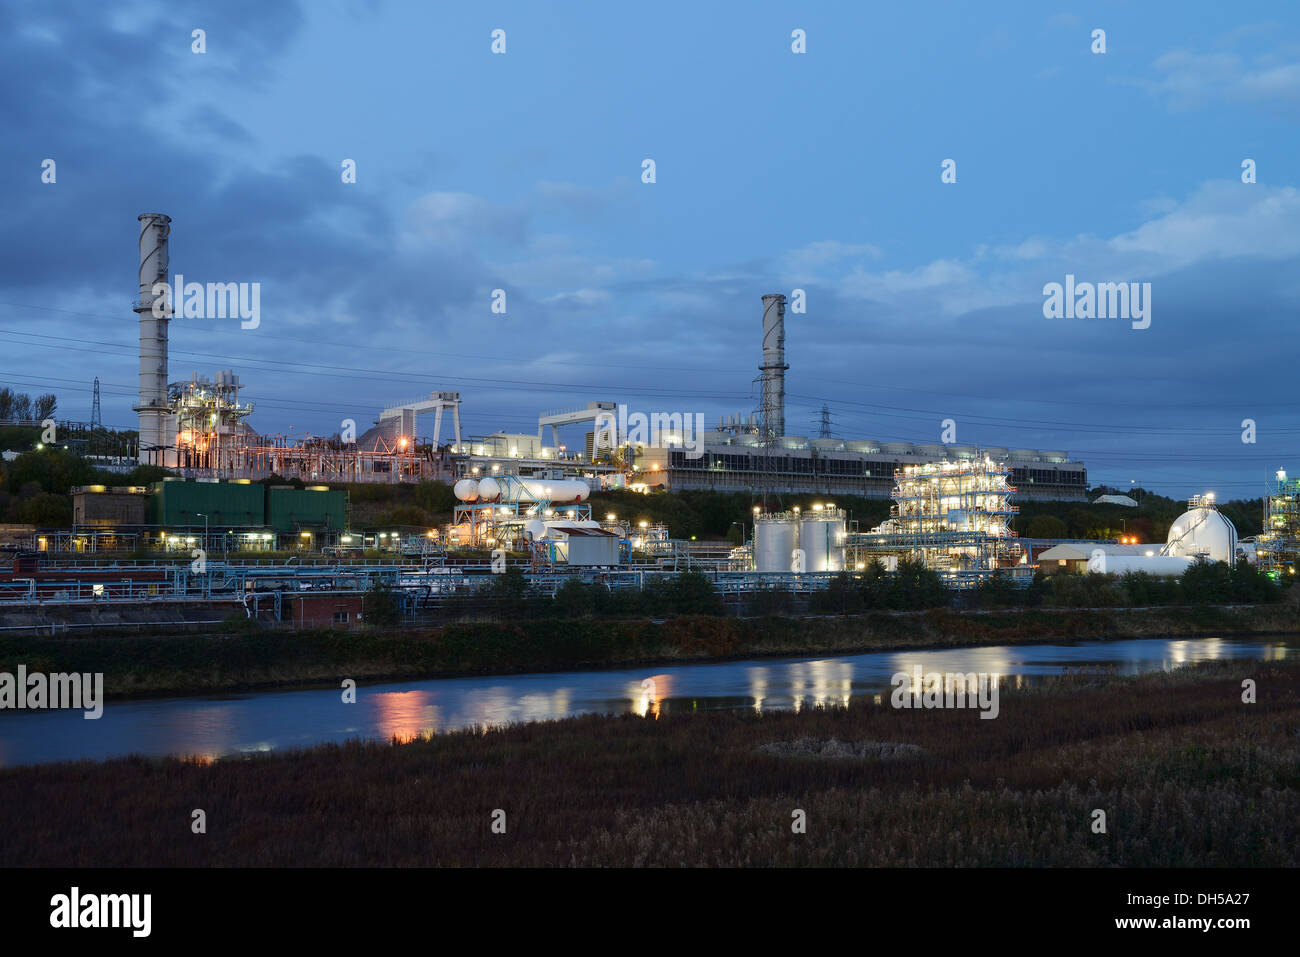 Power station alongside the Ineos Chlor industrial chemical works on the River Mersey estuary in Runcorn Cheshire UK - Stock Image